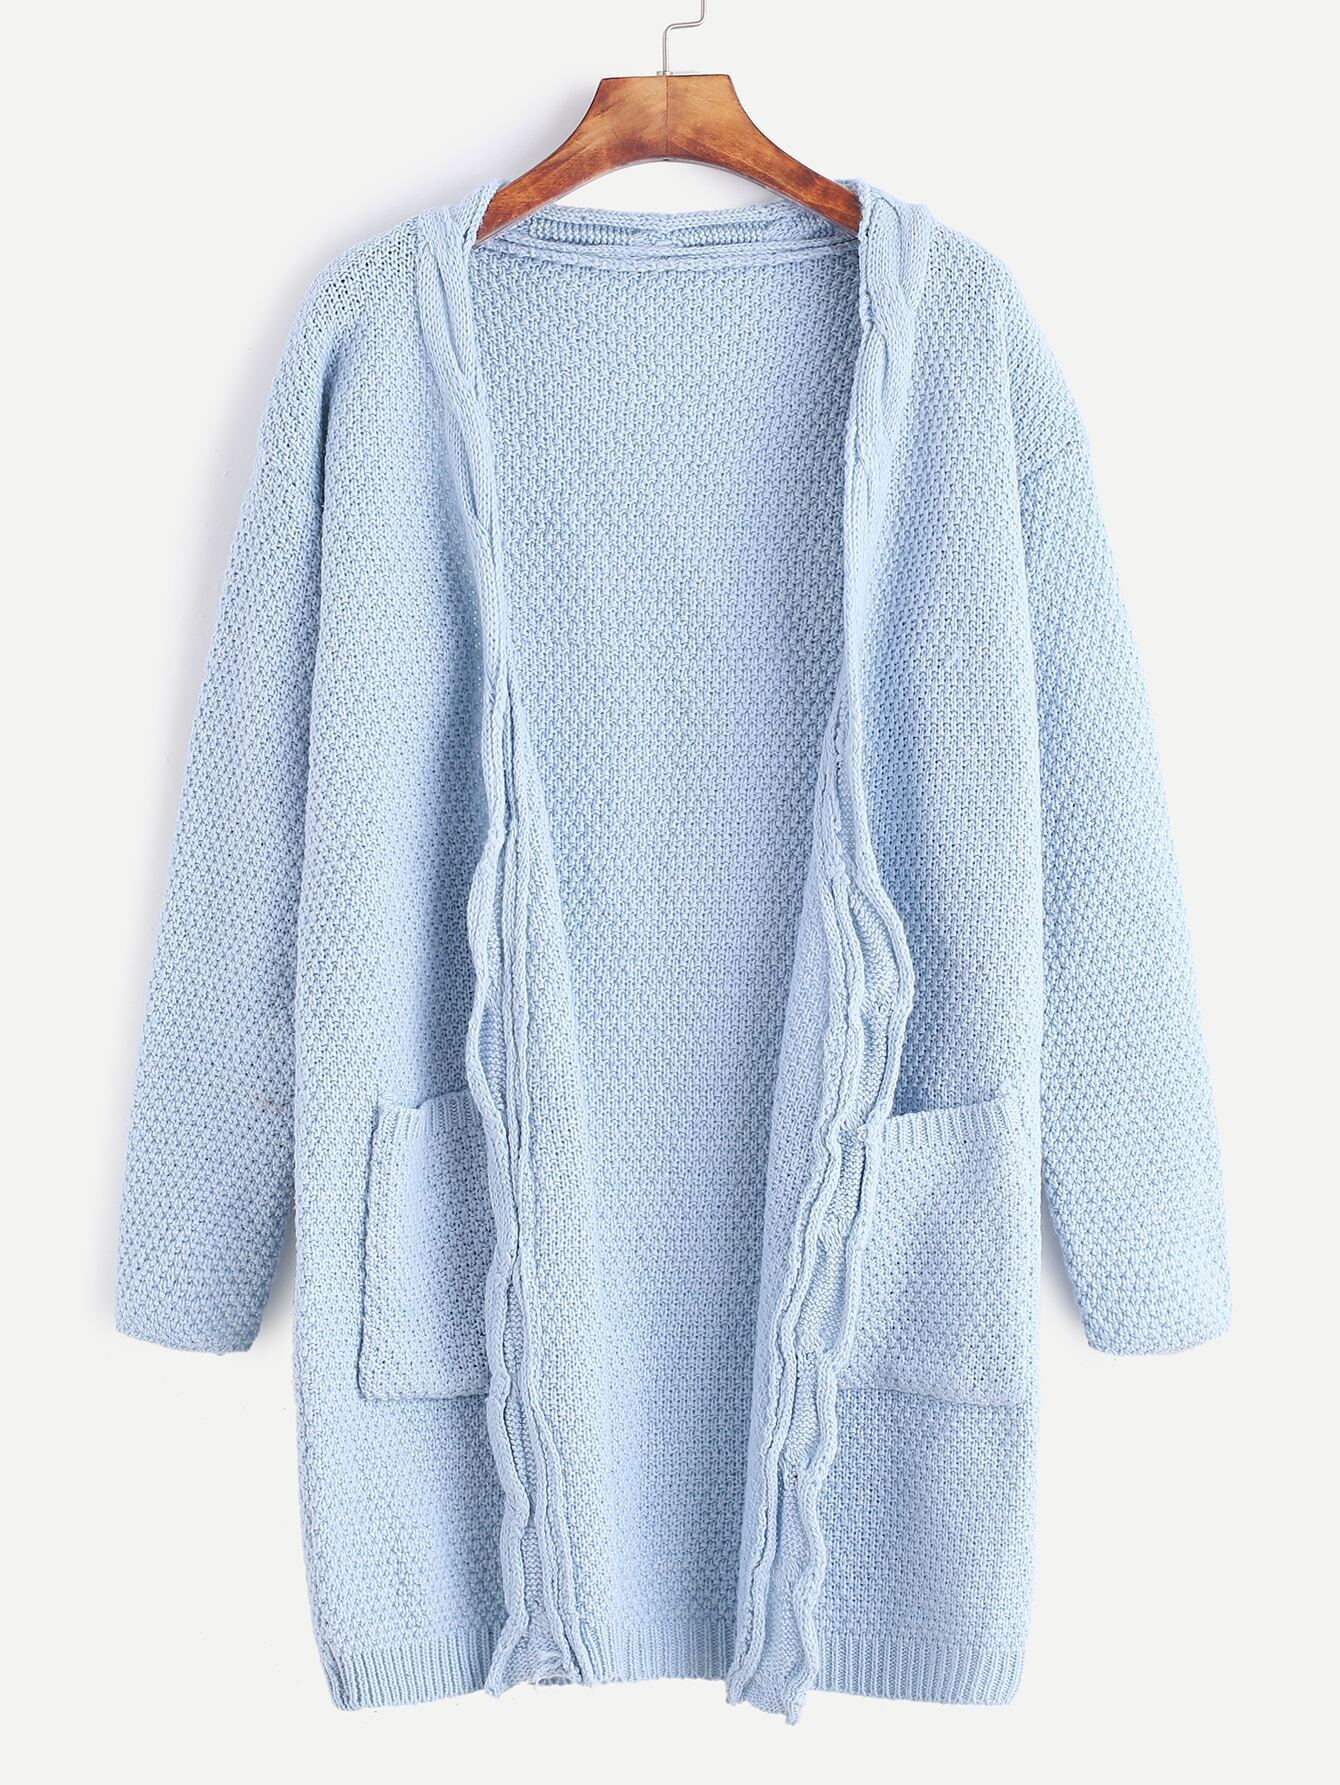 Blue Open Front Long Sweater Coat With Pockets sweater161027332